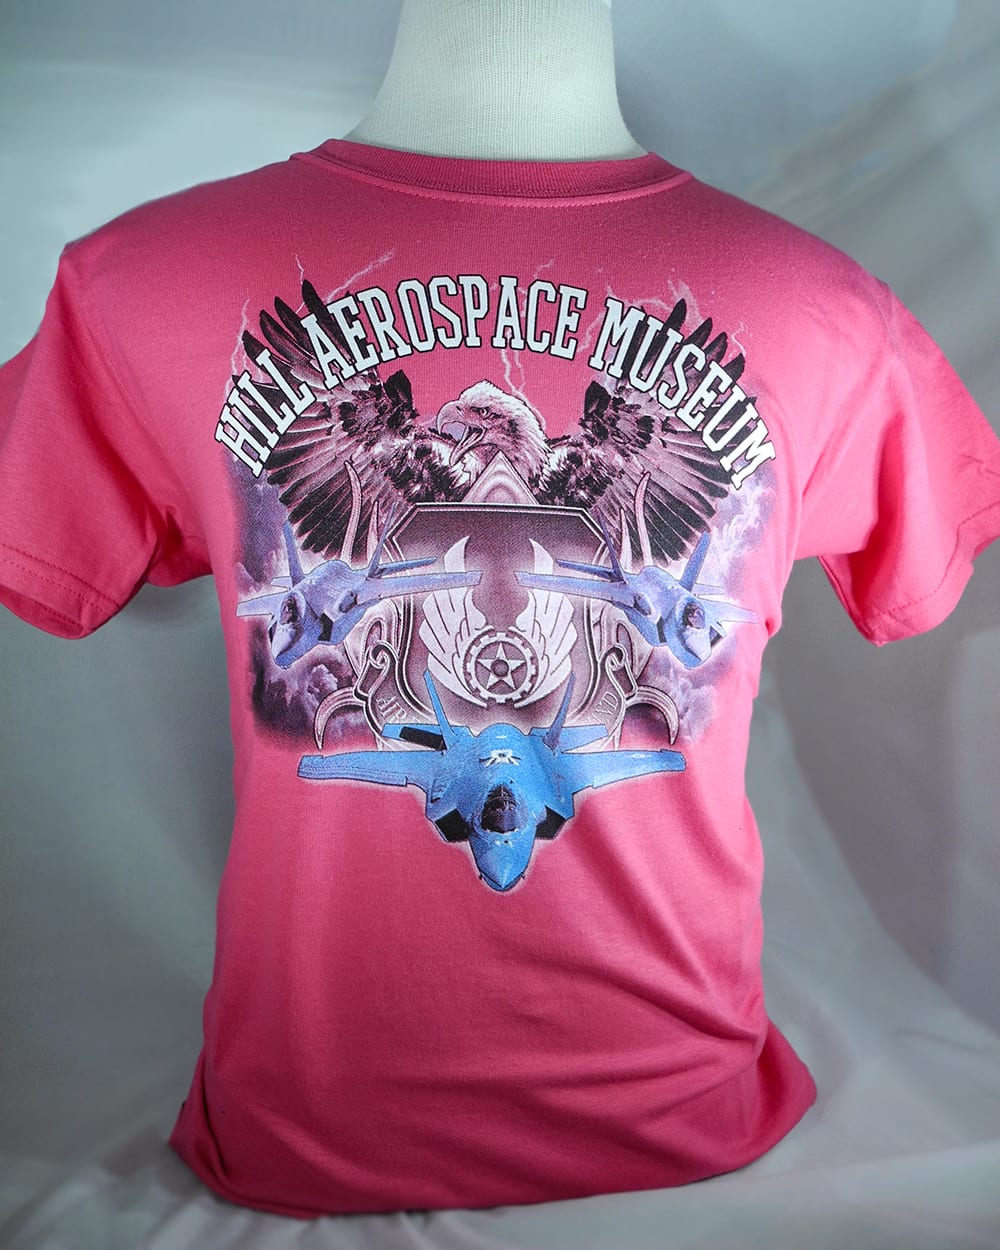 Hill Aerospace Museum Youth T-shirts 1